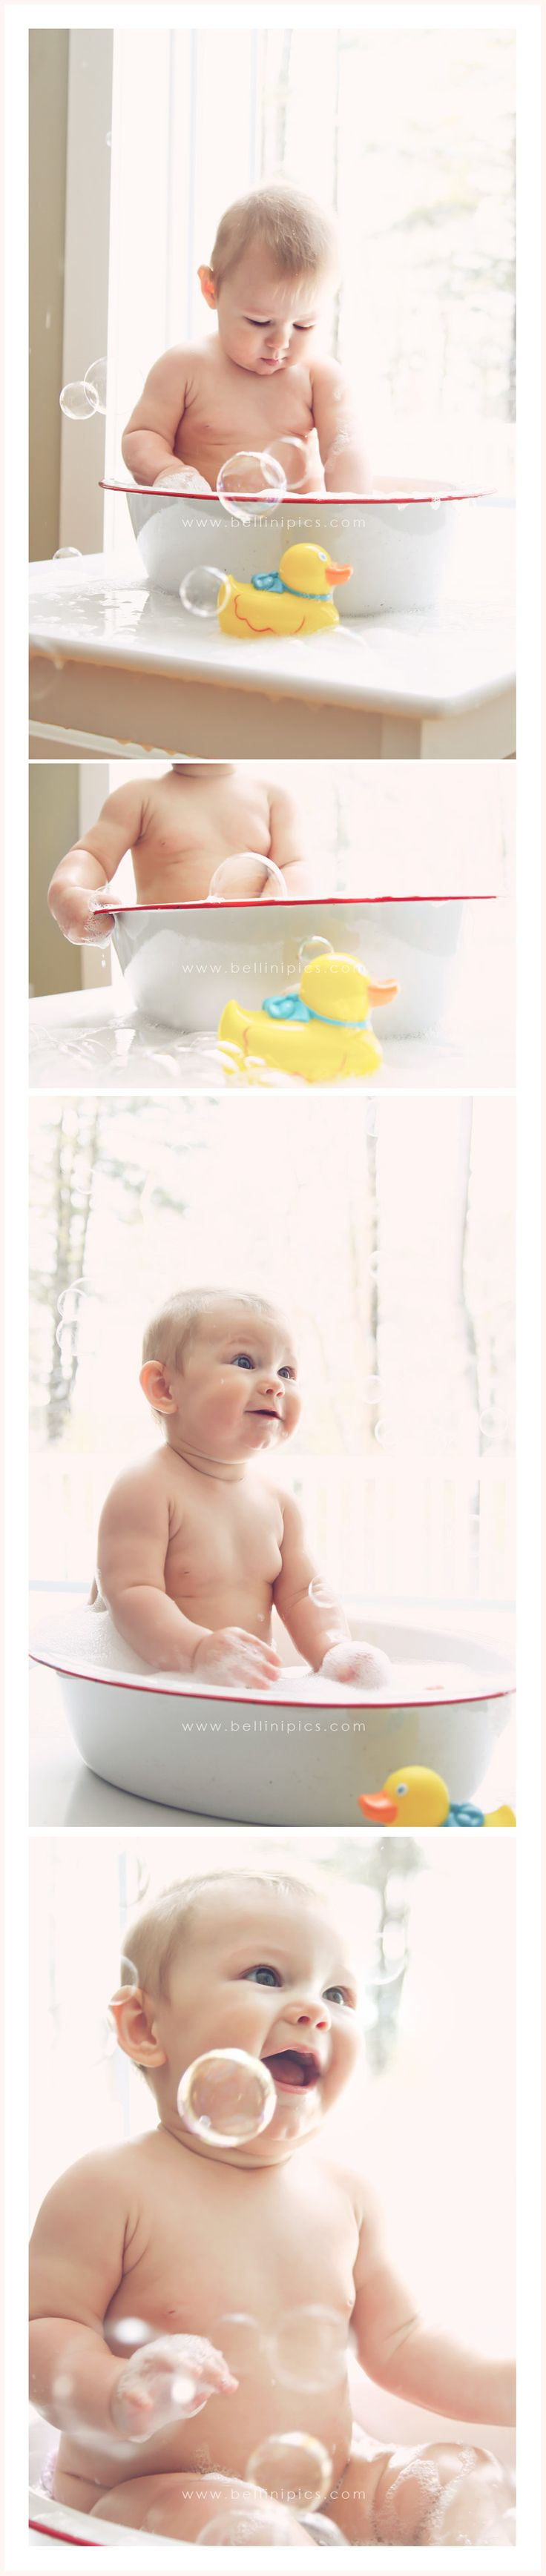 bubble bath baby baby toddler photo shoot ideas pinterest. Black Bedroom Furniture Sets. Home Design Ideas